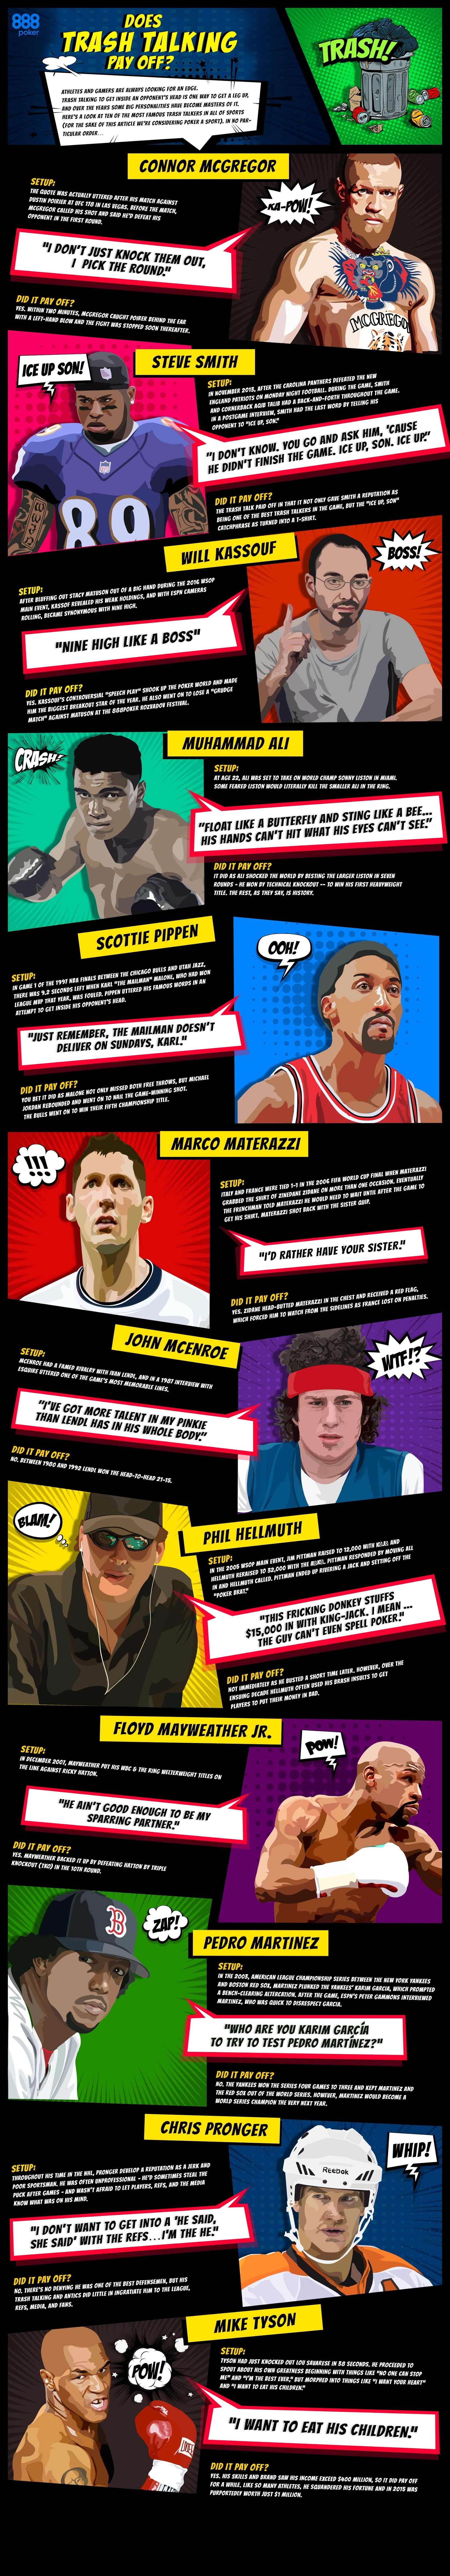 Does Trash Talking Pay Off? - infographic